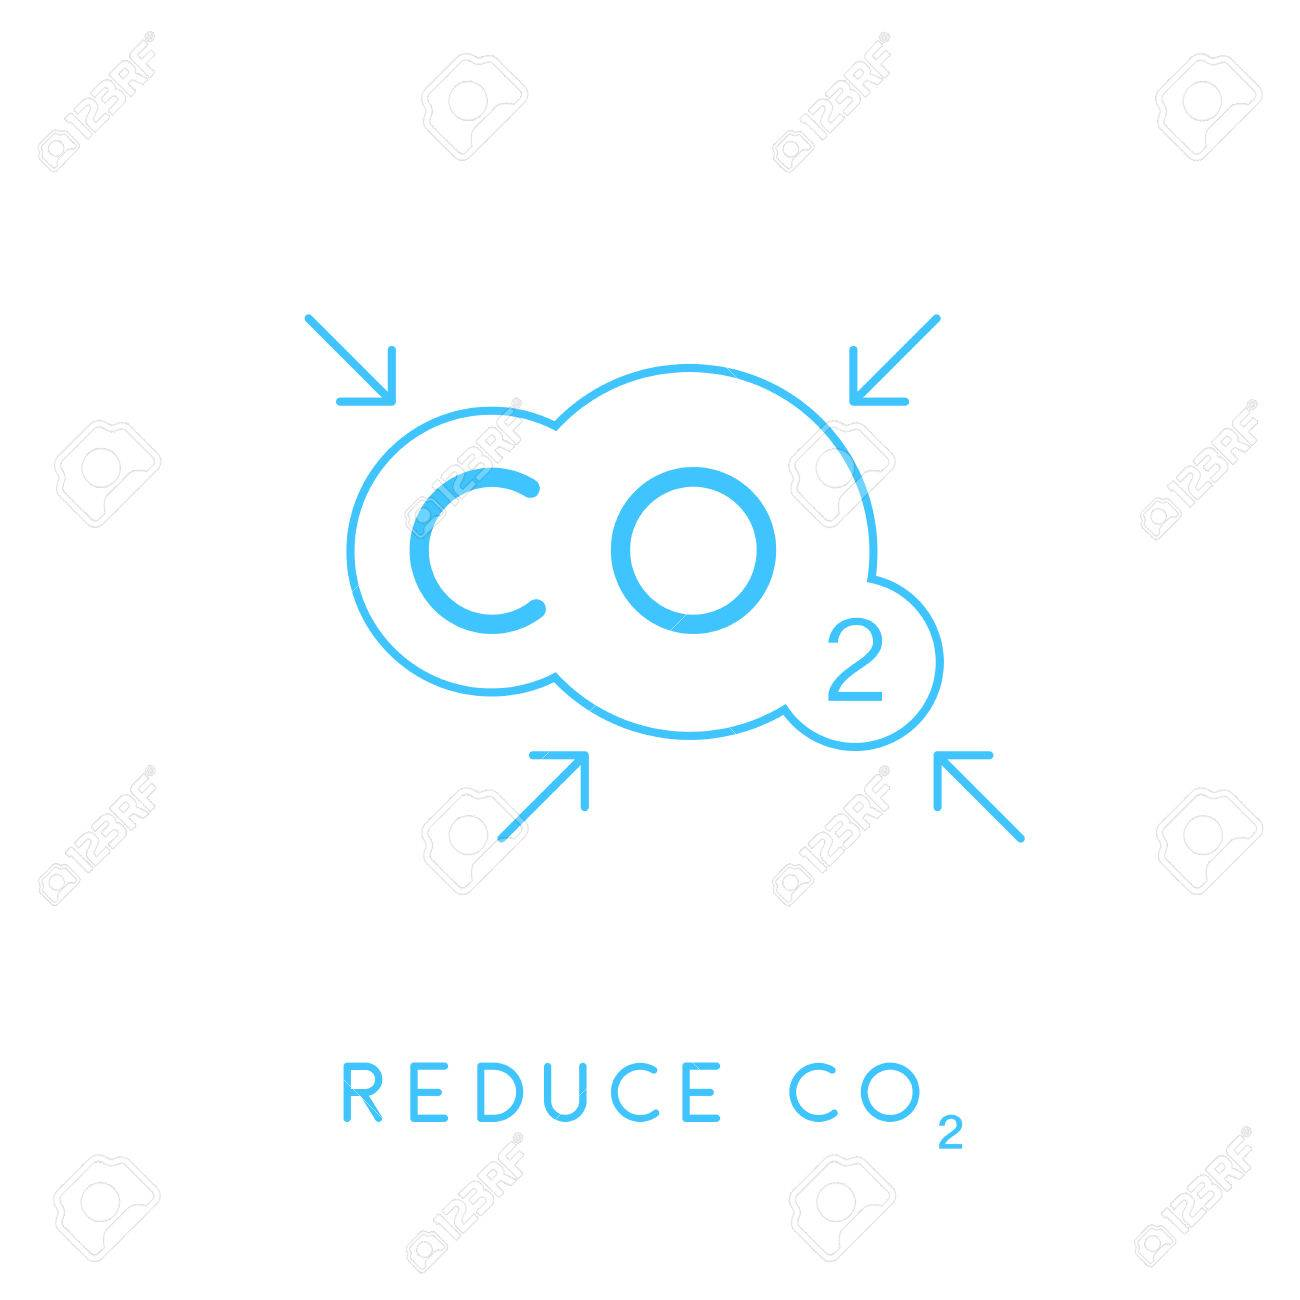 Reduce carbon co2 emissions concept icon with blue linear cloud reduce carbon co2 emissions concept icon with blue linear cloud with inward pointing arrows symbol buycottarizona Images